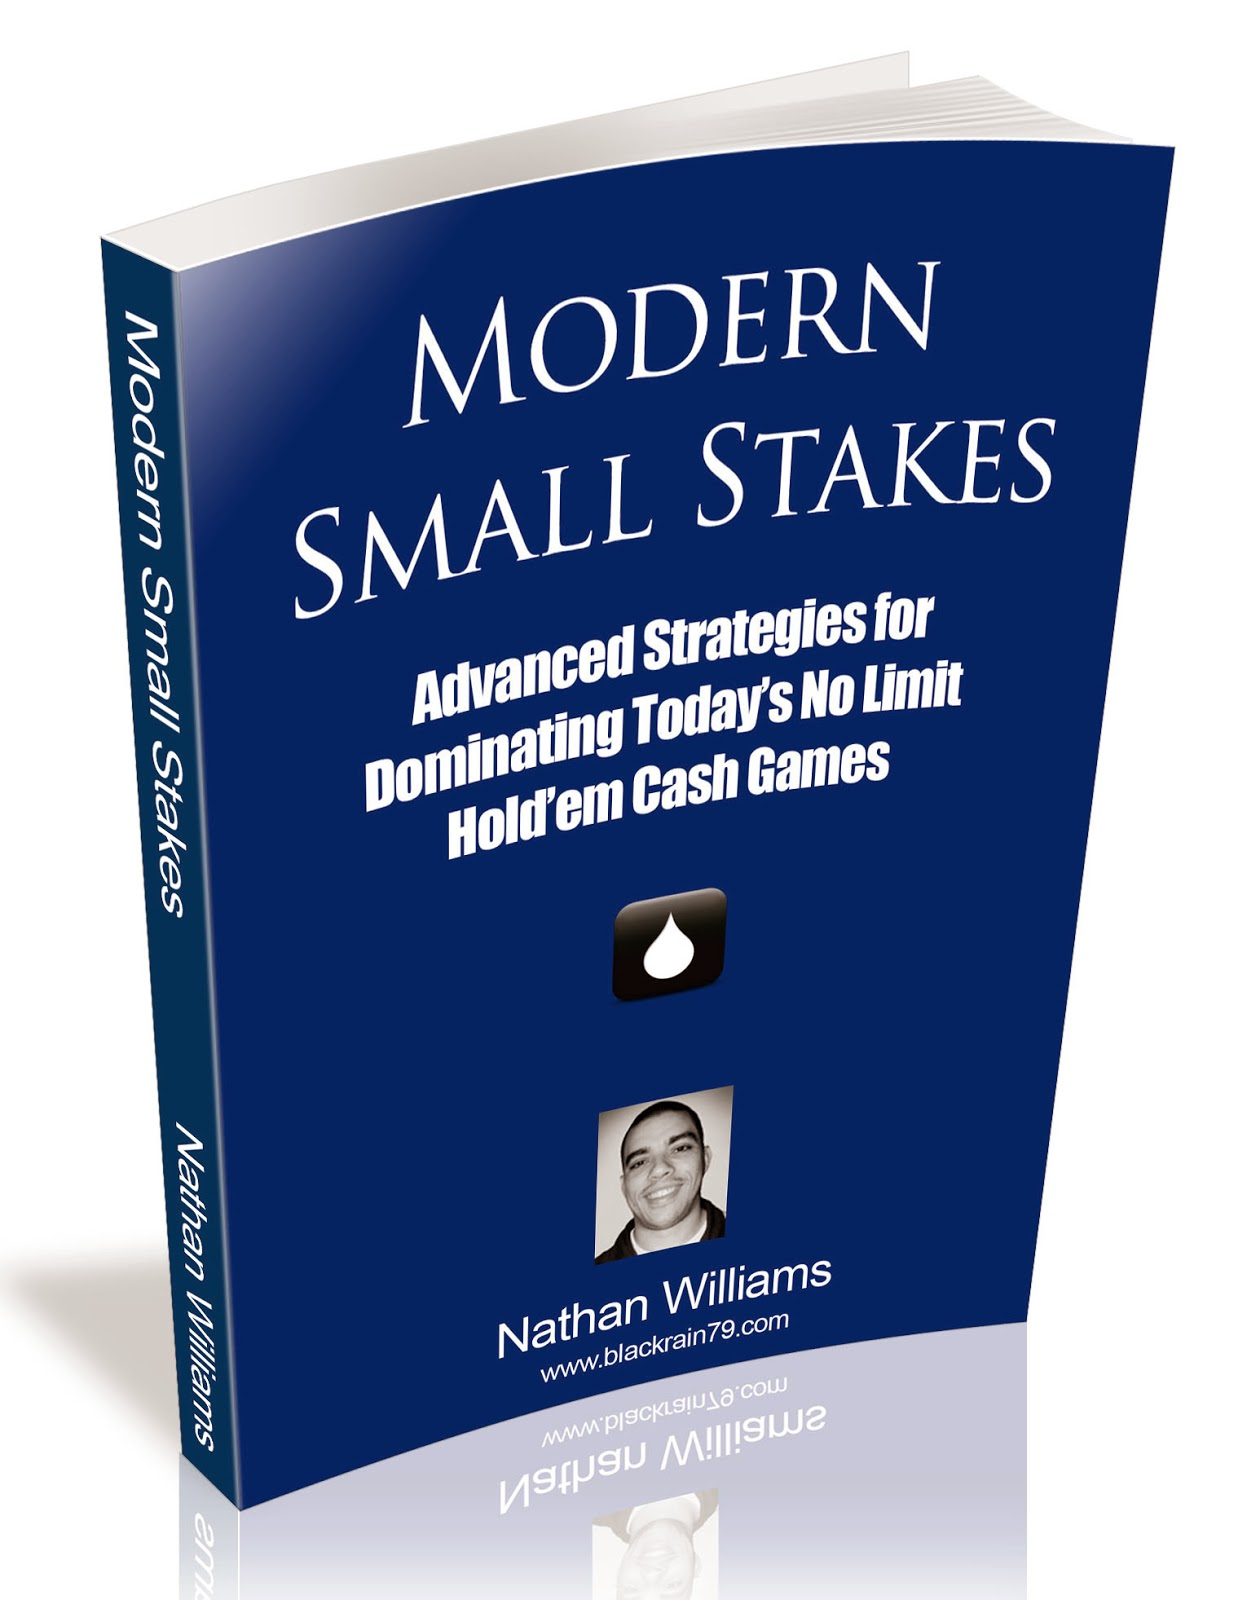 modern-small-stakes-cover-3d-cropped